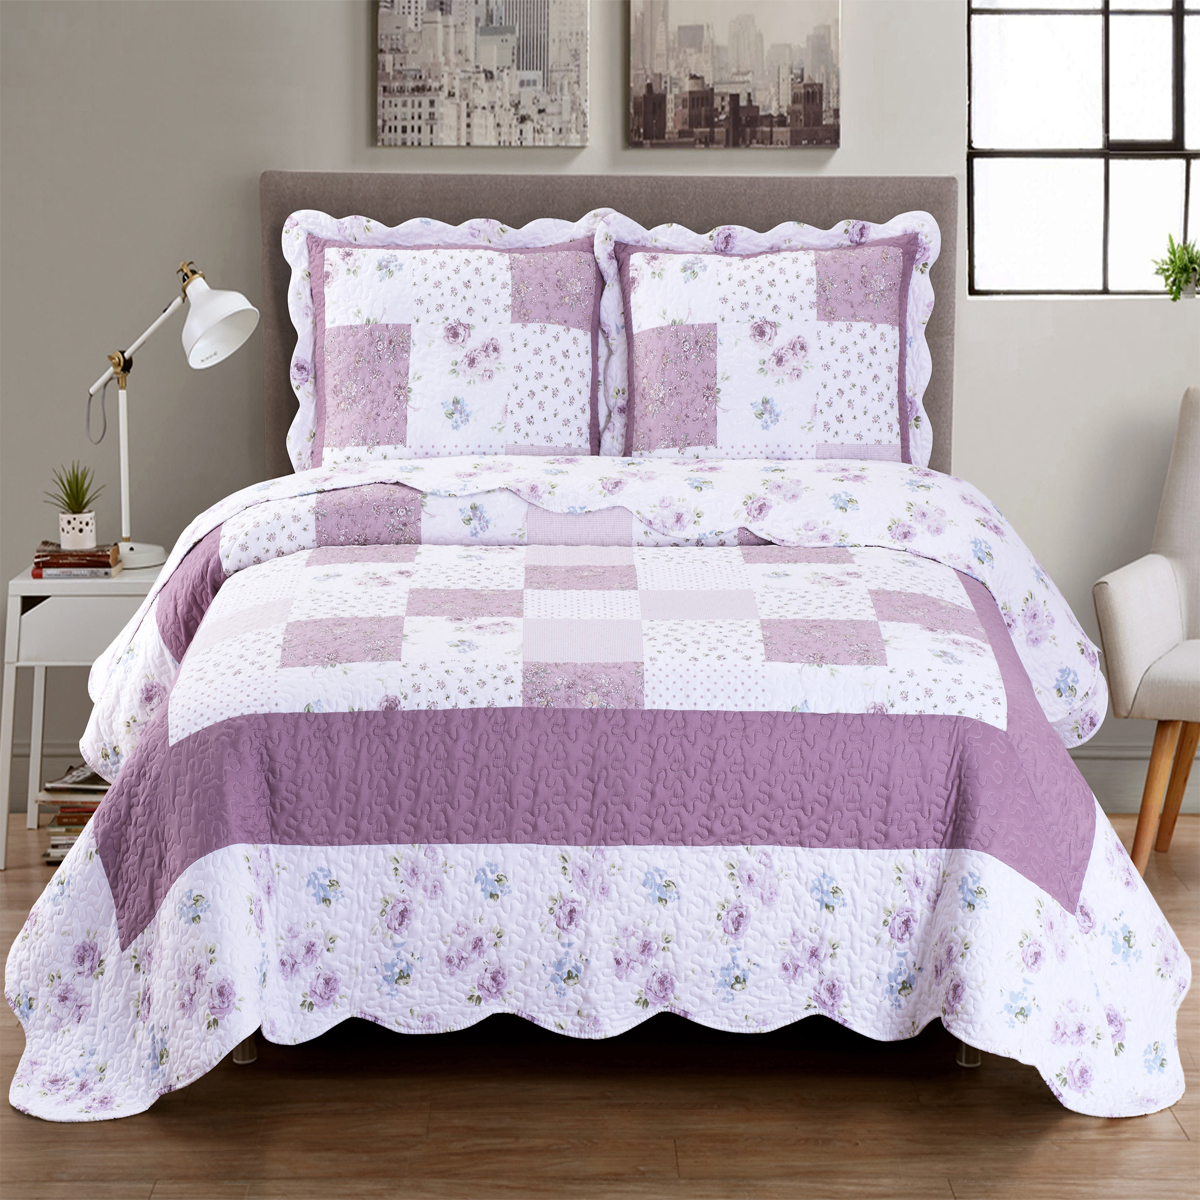 Ventura Oversize Reversible Quilted Coverlet Set Wrinkle-Free & Pet hair Resistant : Full/Queen